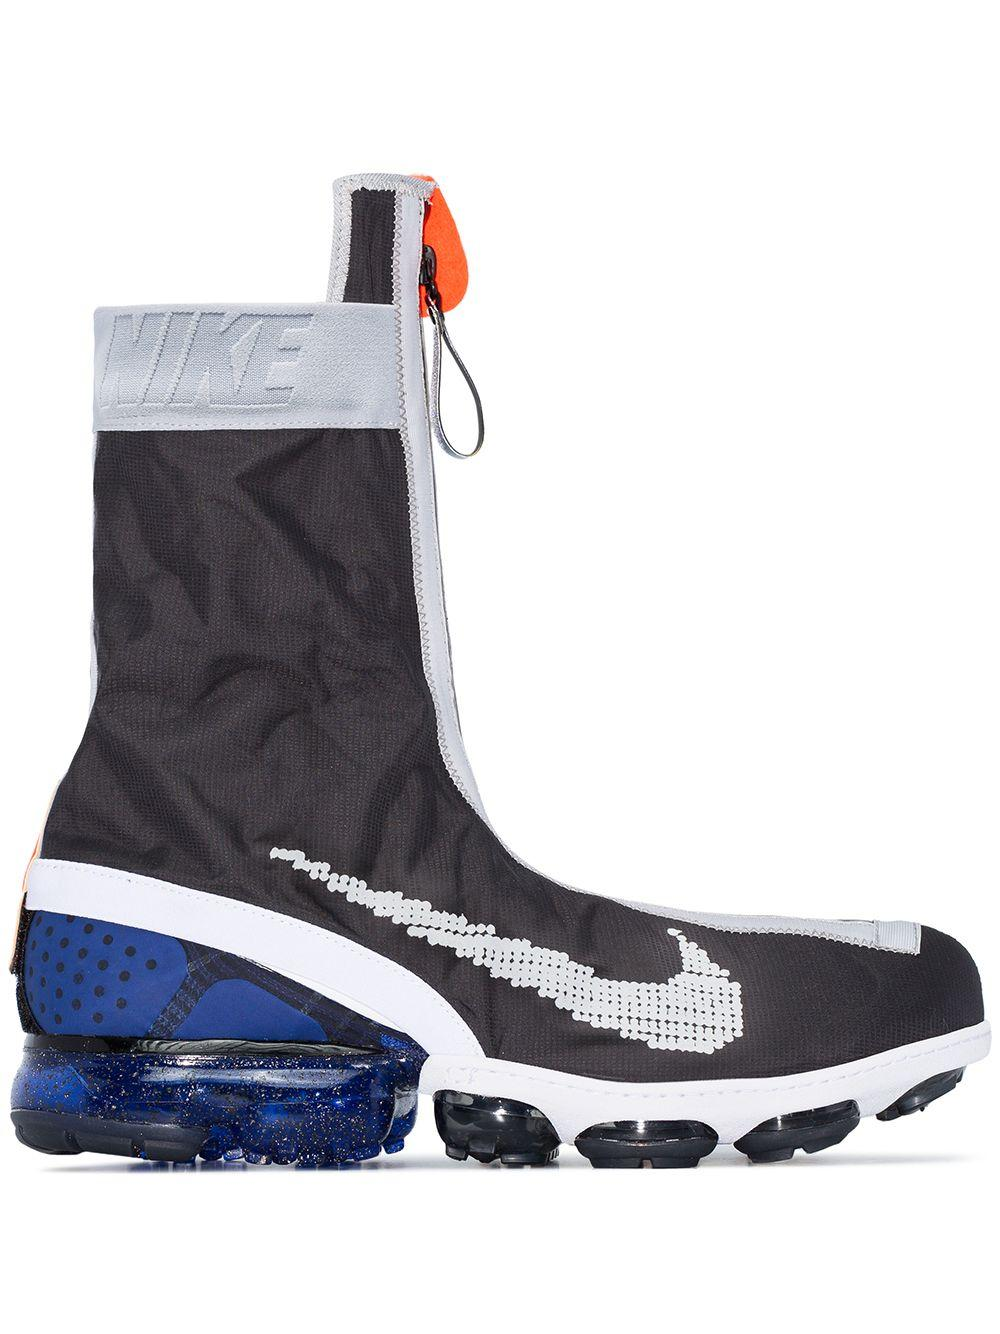 Nike Synthetic Air Vapormax Flyknit Gaiter Ispa Sneakers in Black ...